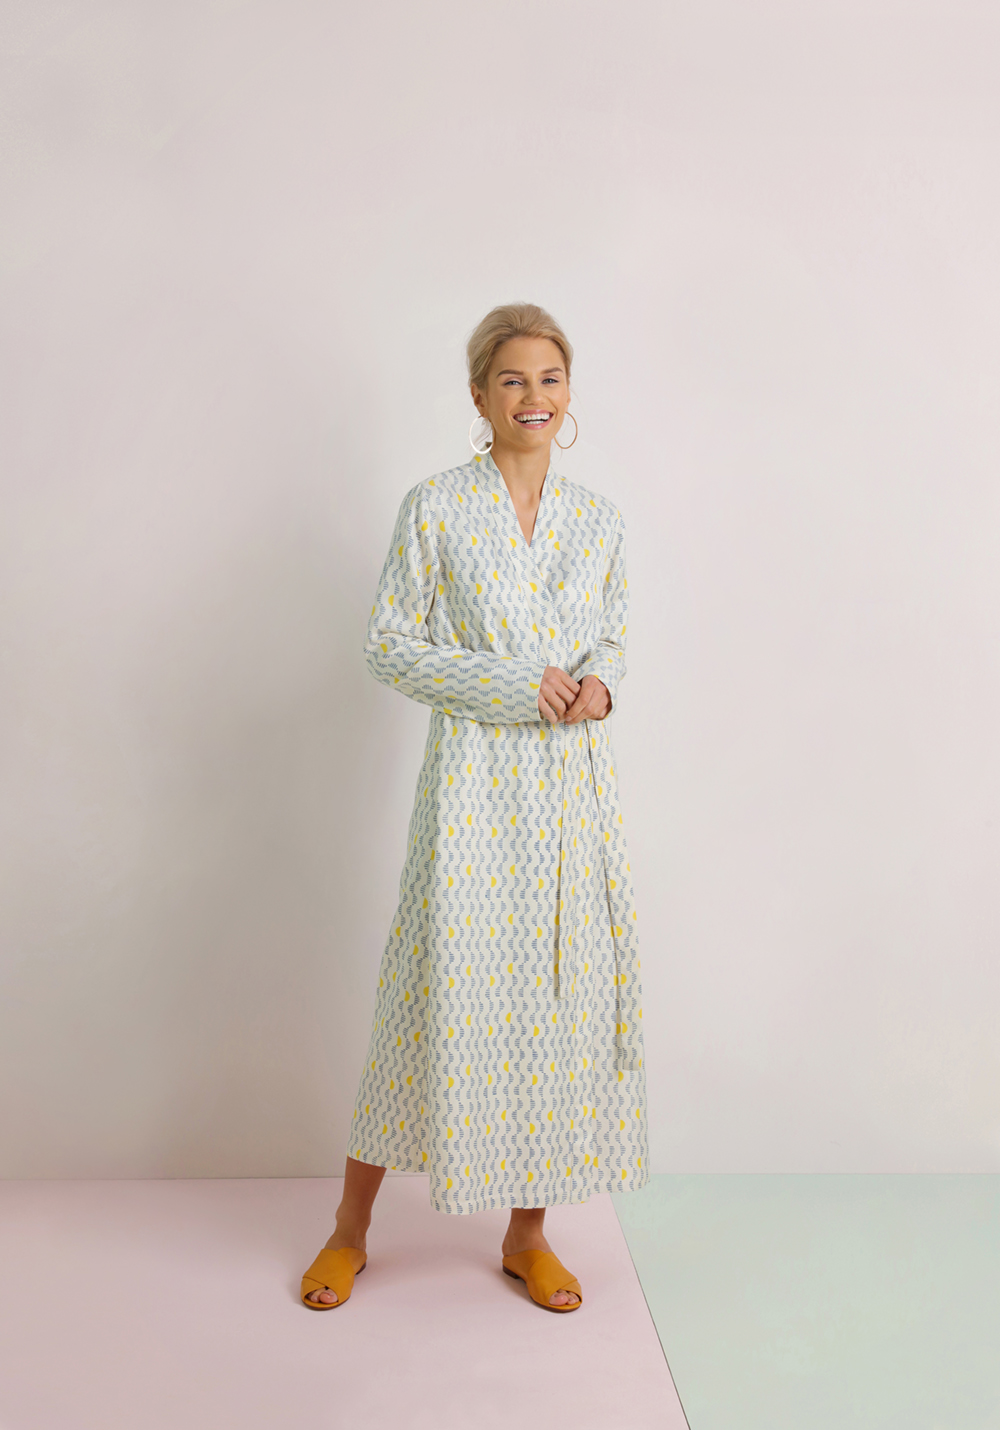 € SHOP (Worldwide) — The Ethical Silk Company